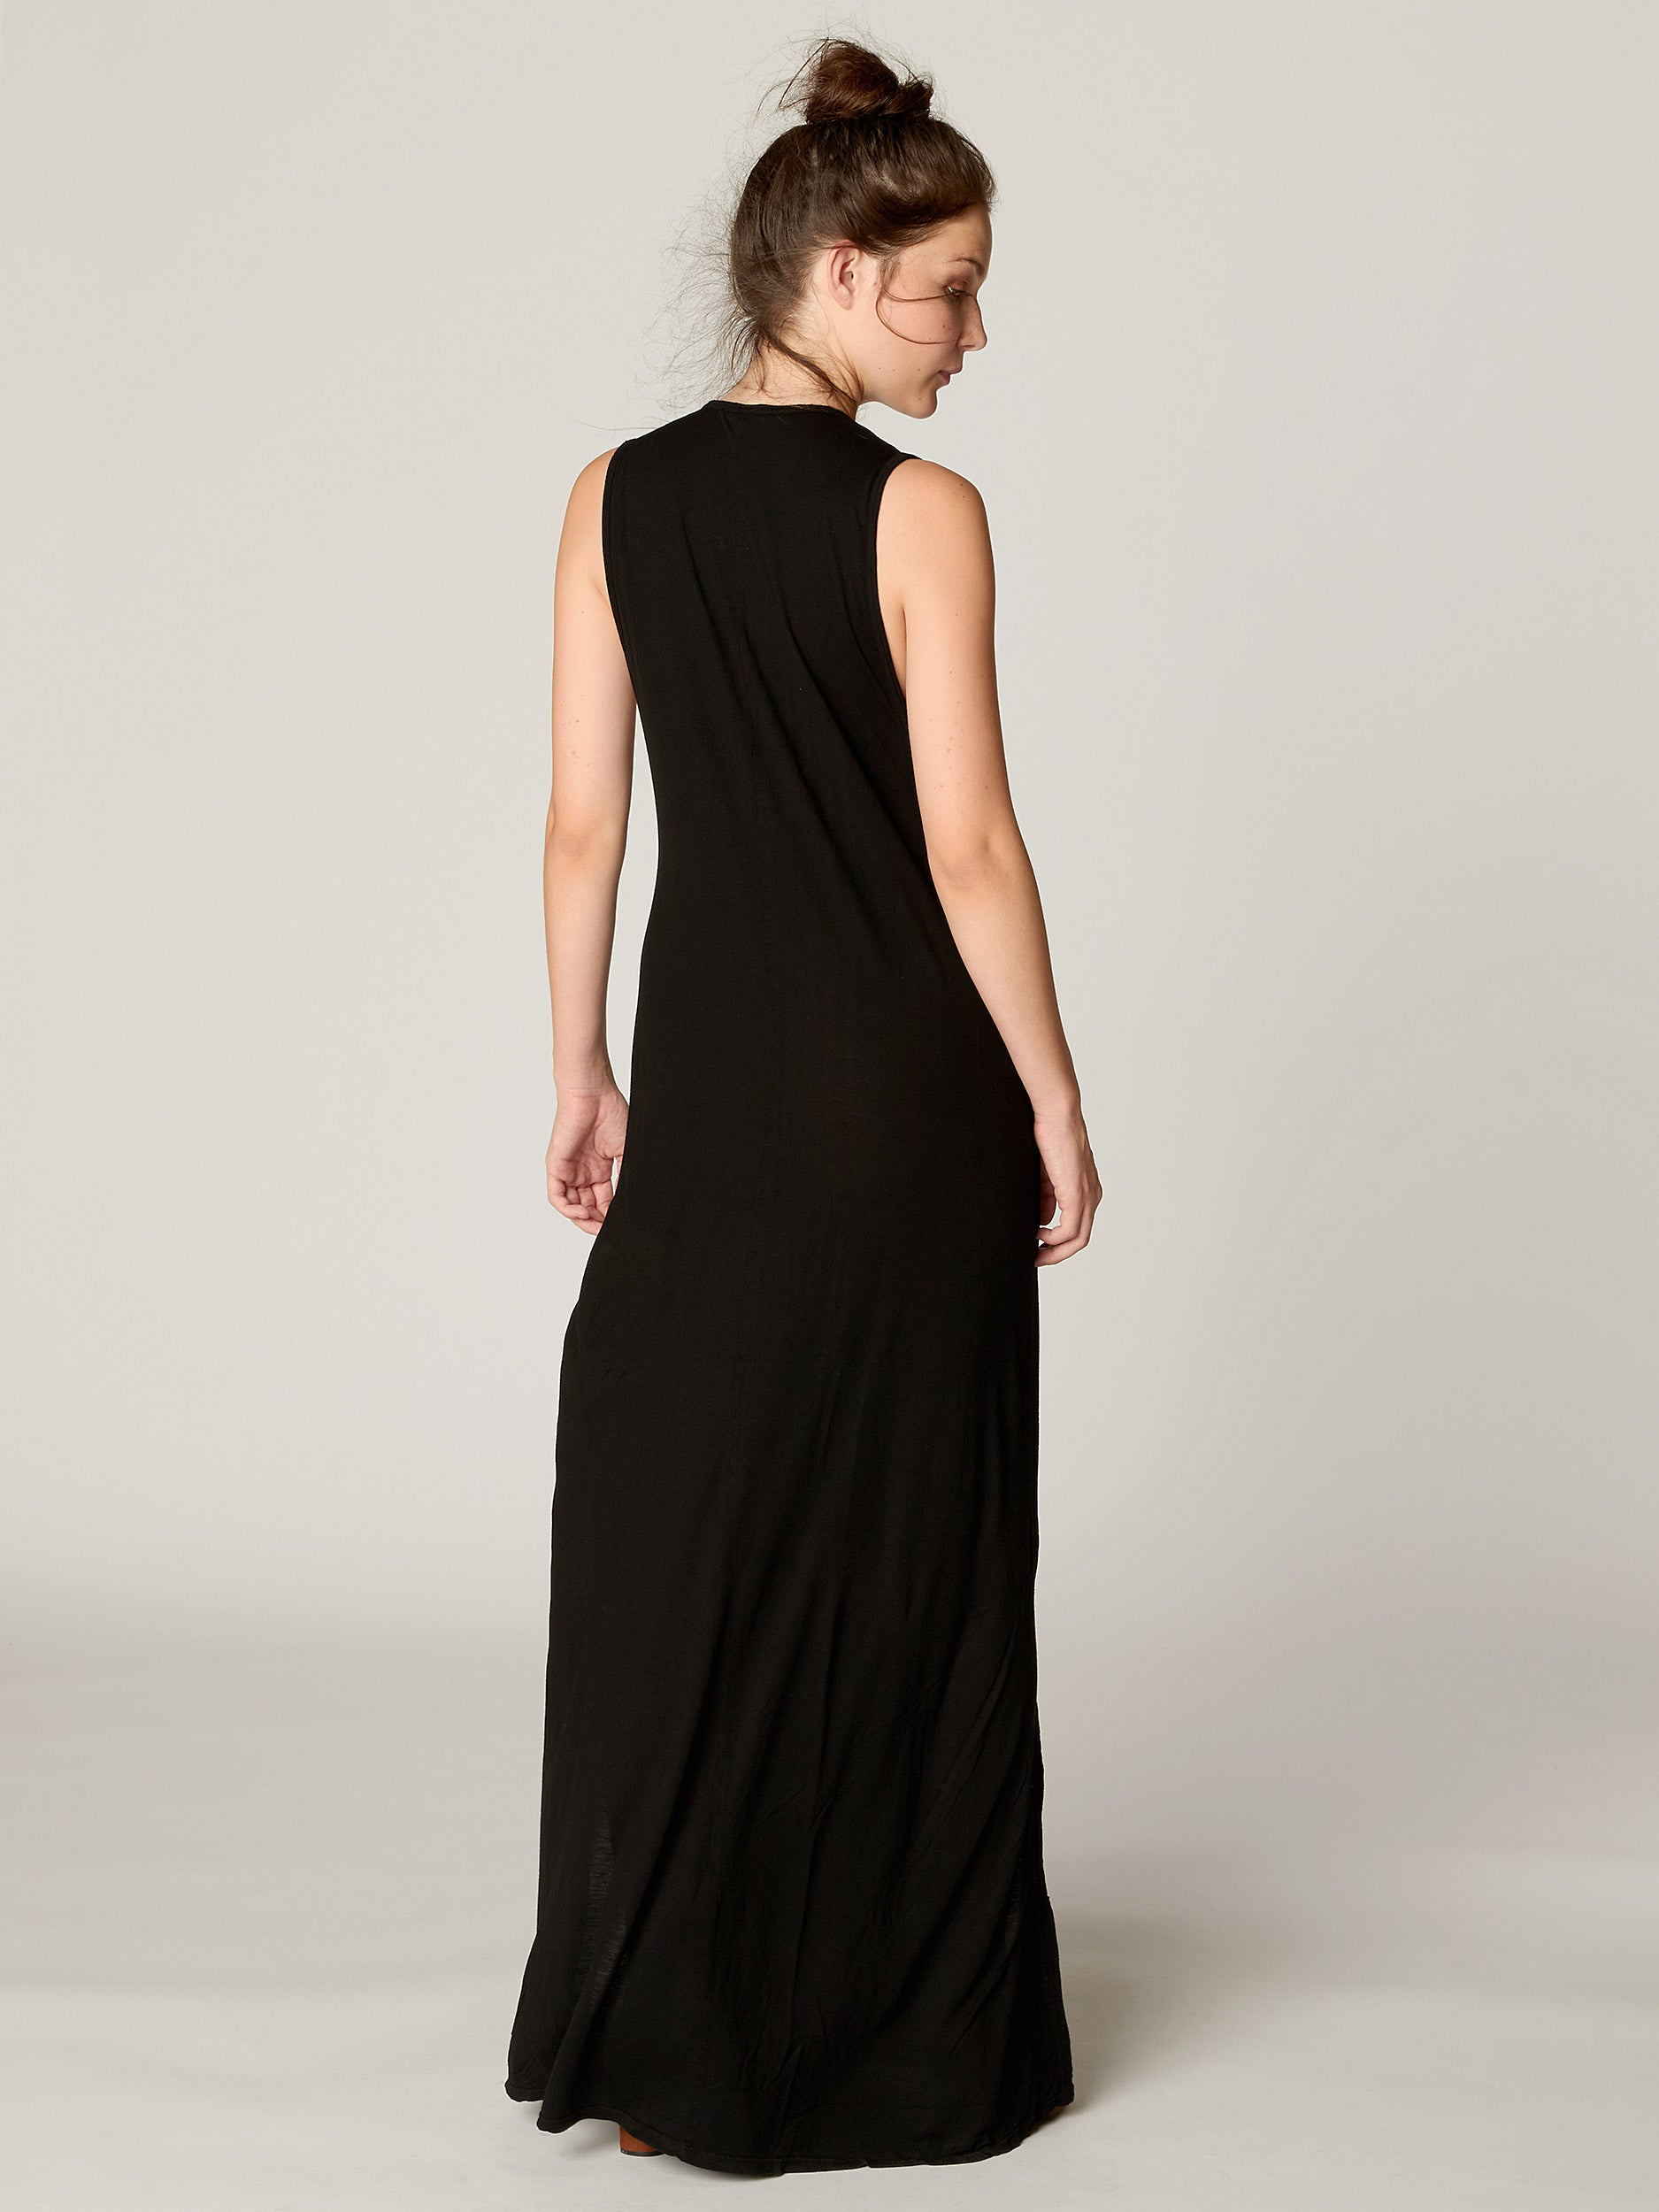 Coco Belted Maxi Dress